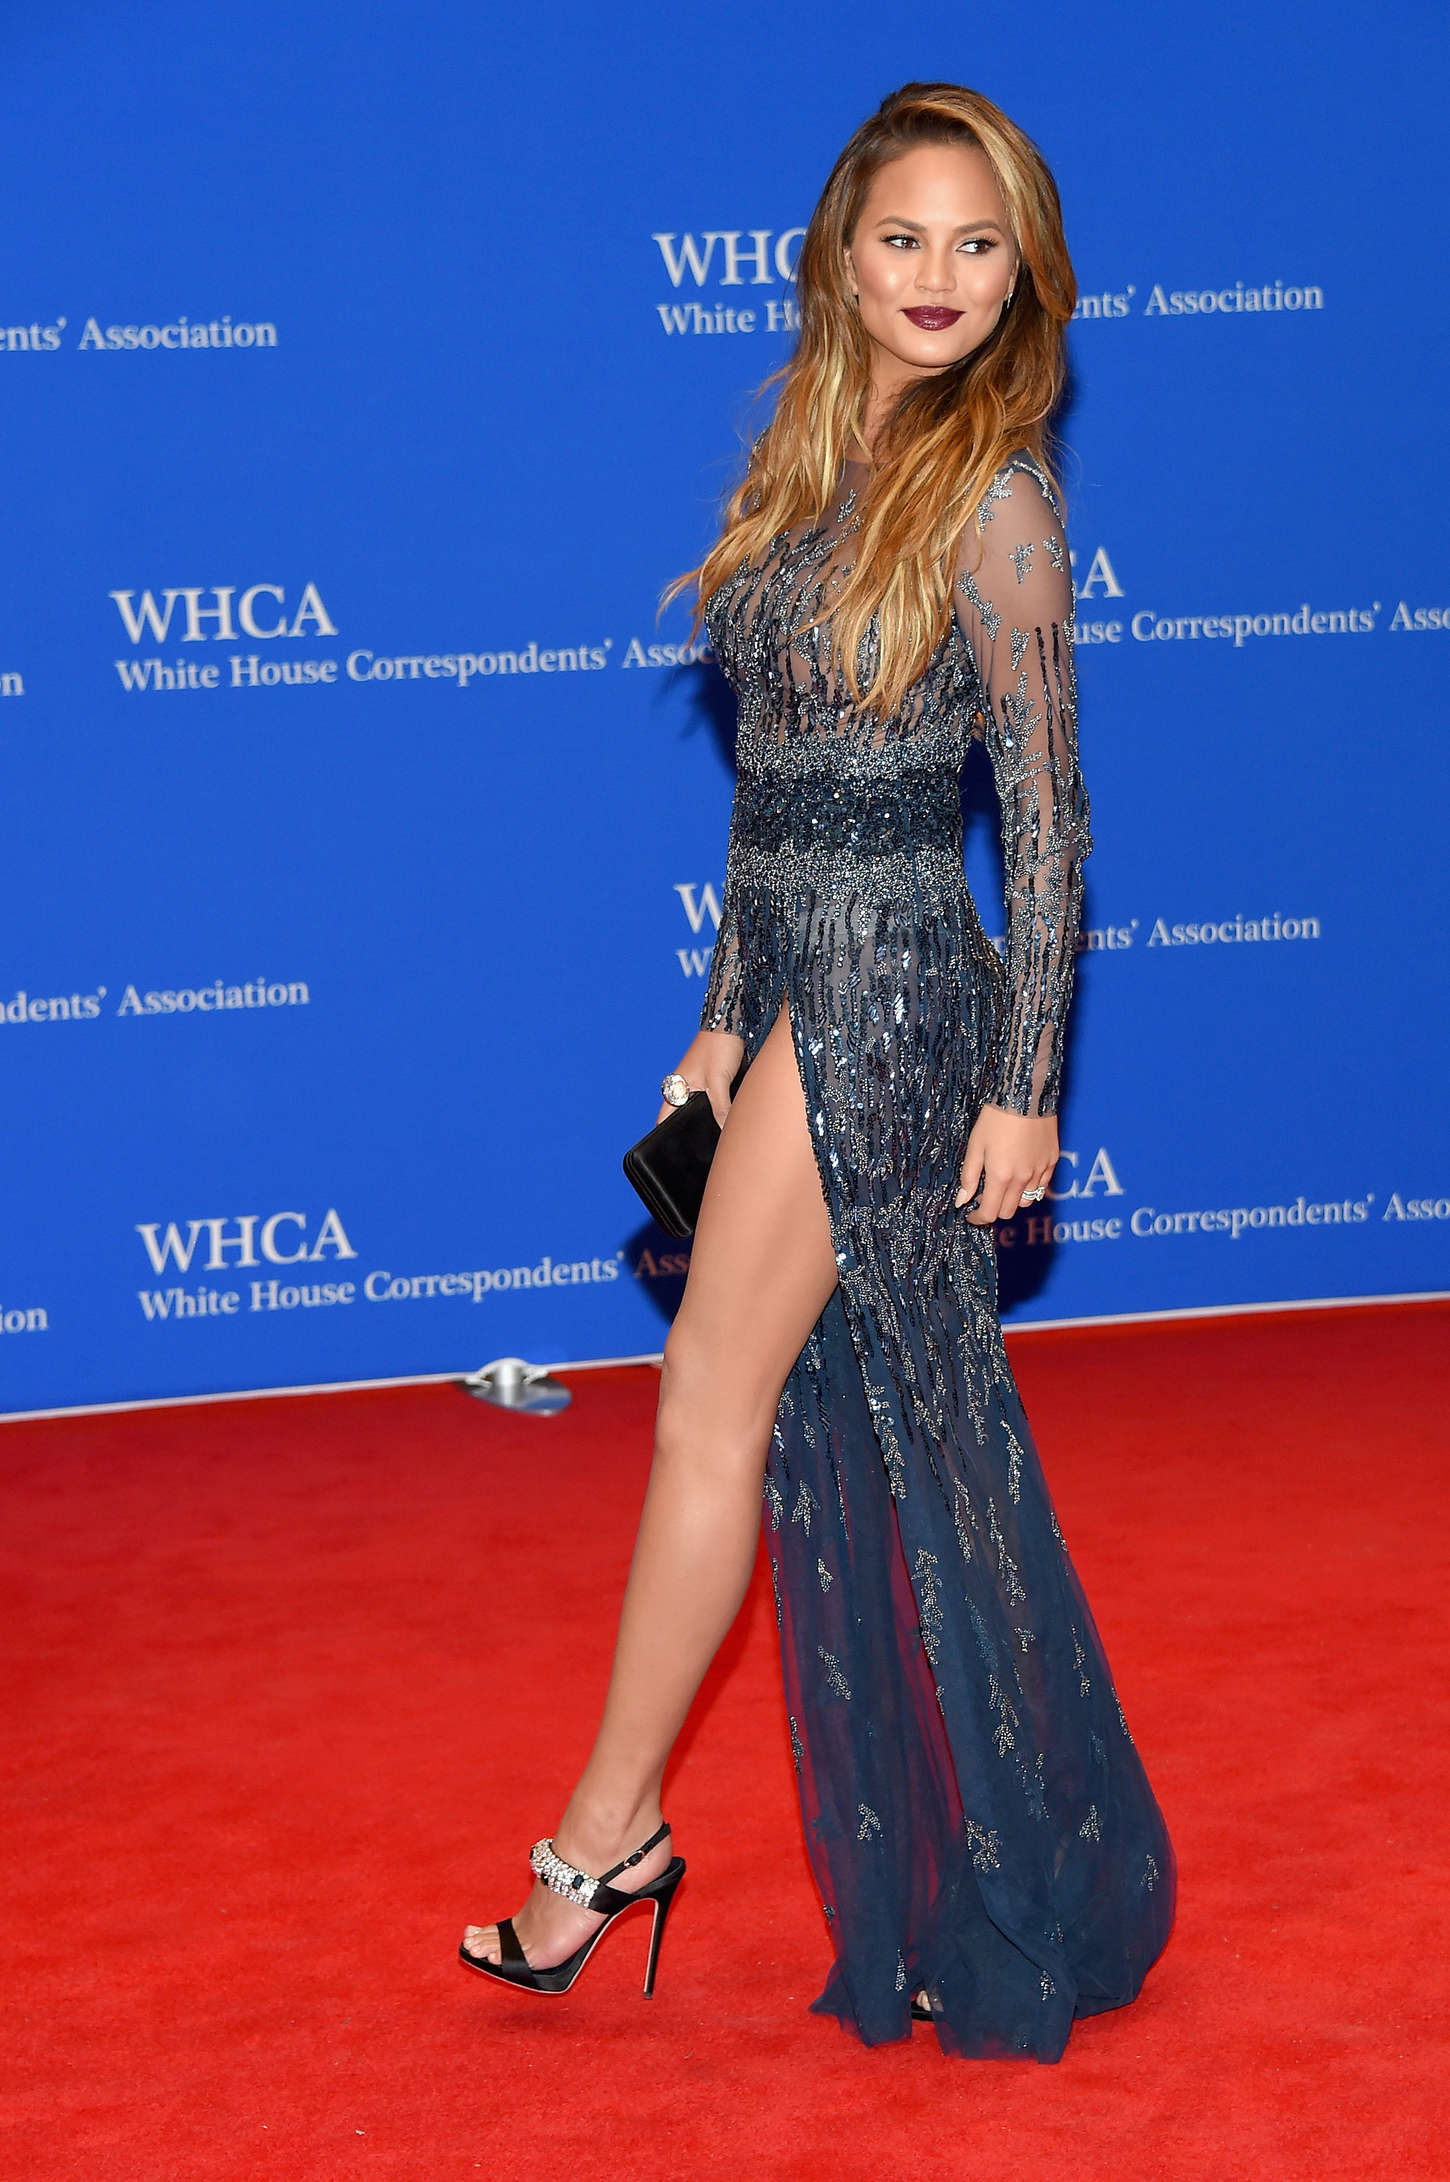 Chrissy Teigen - 2015 White House Correspondents' Association Dinner in Washington